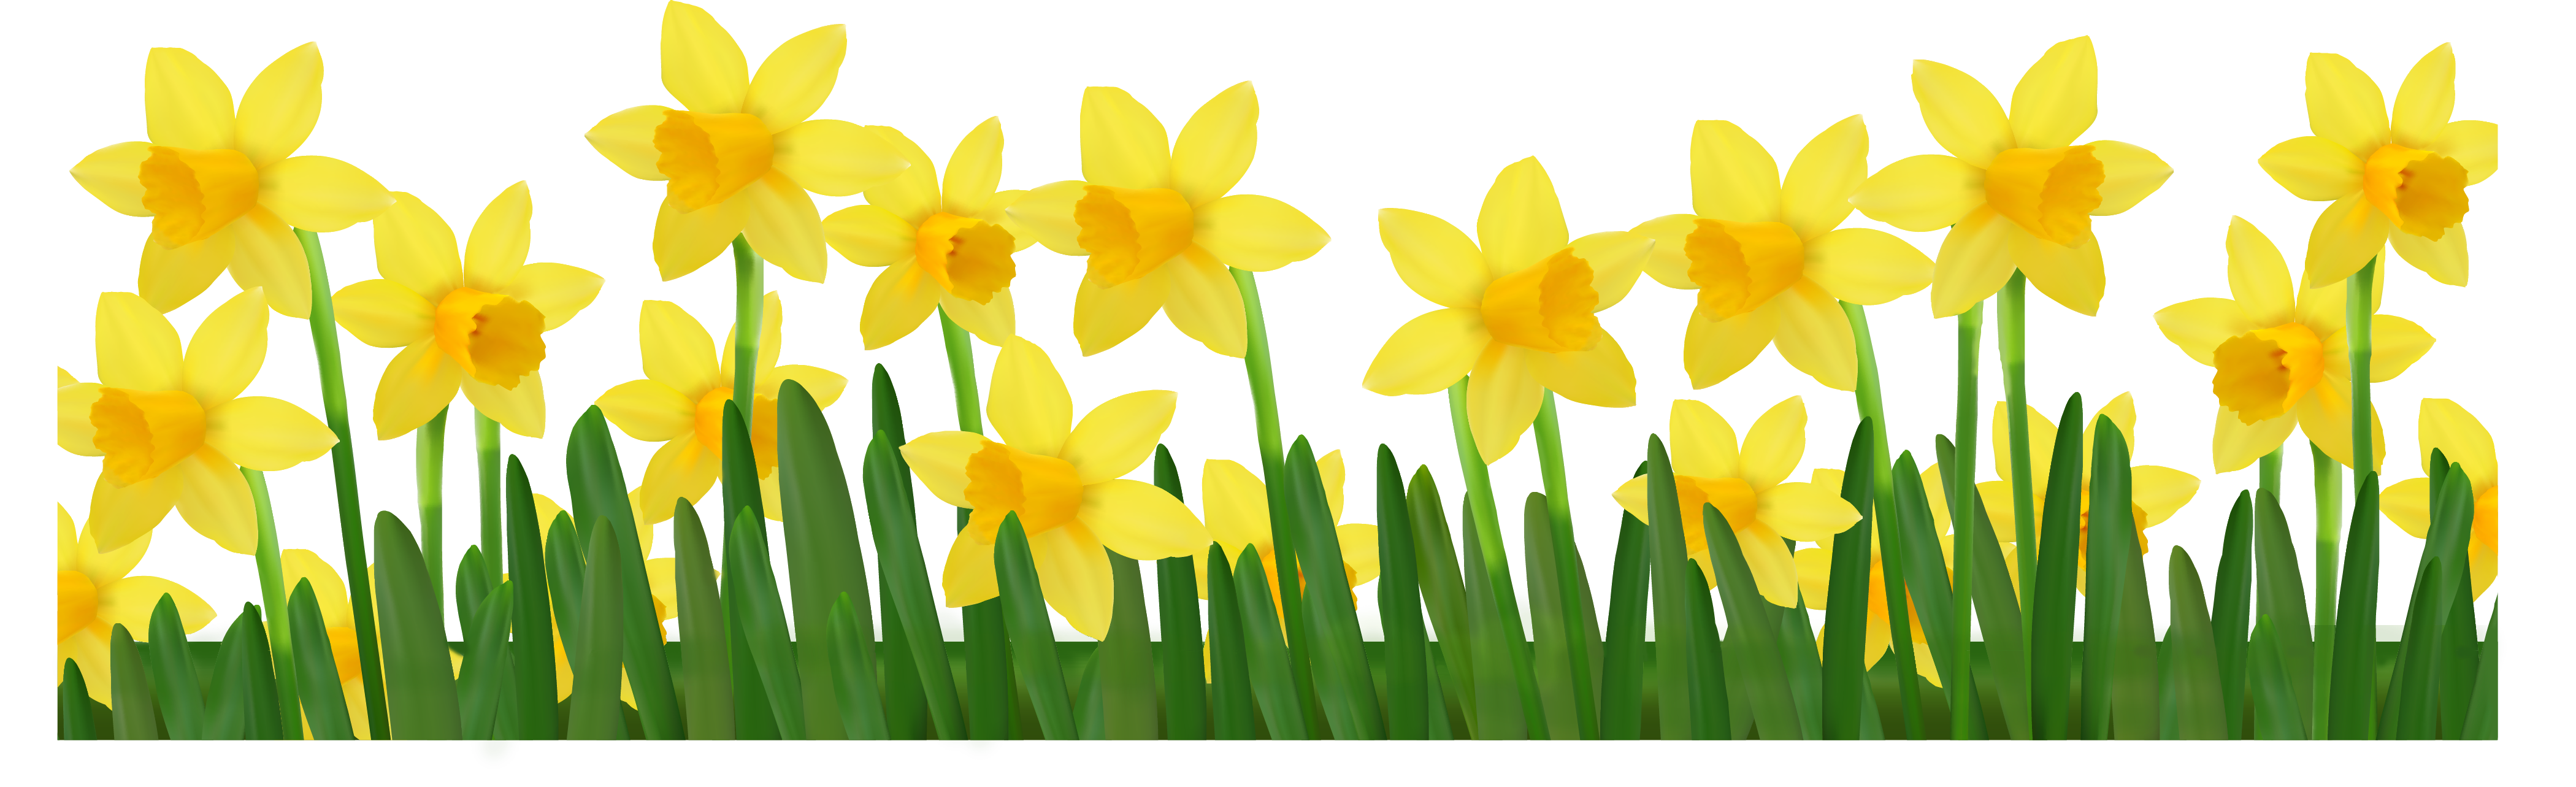 Daffodil border clipart vector freeuse download Grass with Daffodils PNG Clipart Picture | Gallery Yopriceville ... vector freeuse download